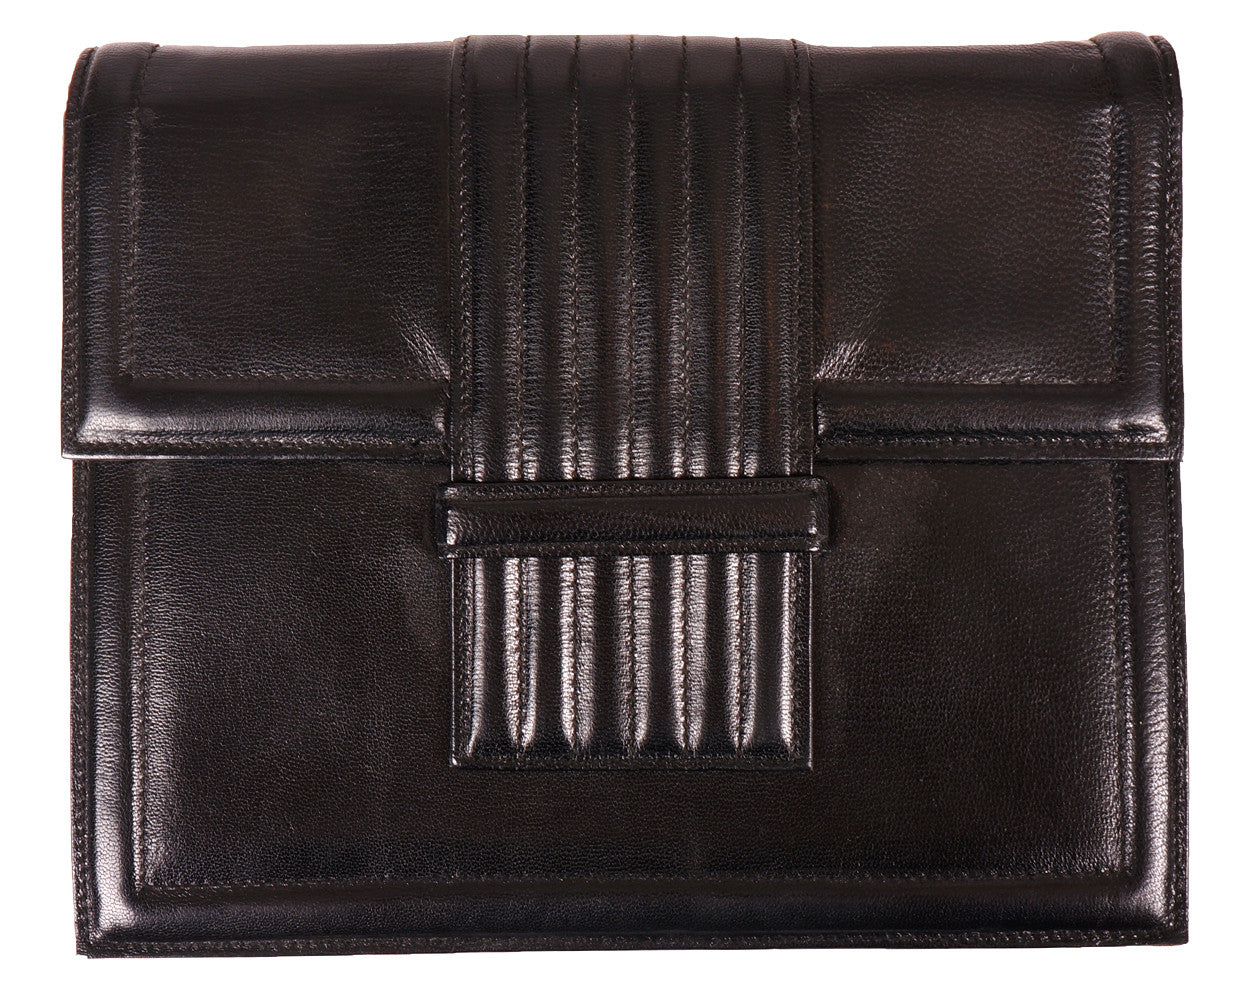 06f9bd85f0ae9 70s Vintage Clutch Purse by Yves St. Laurent Paris in Black Leather